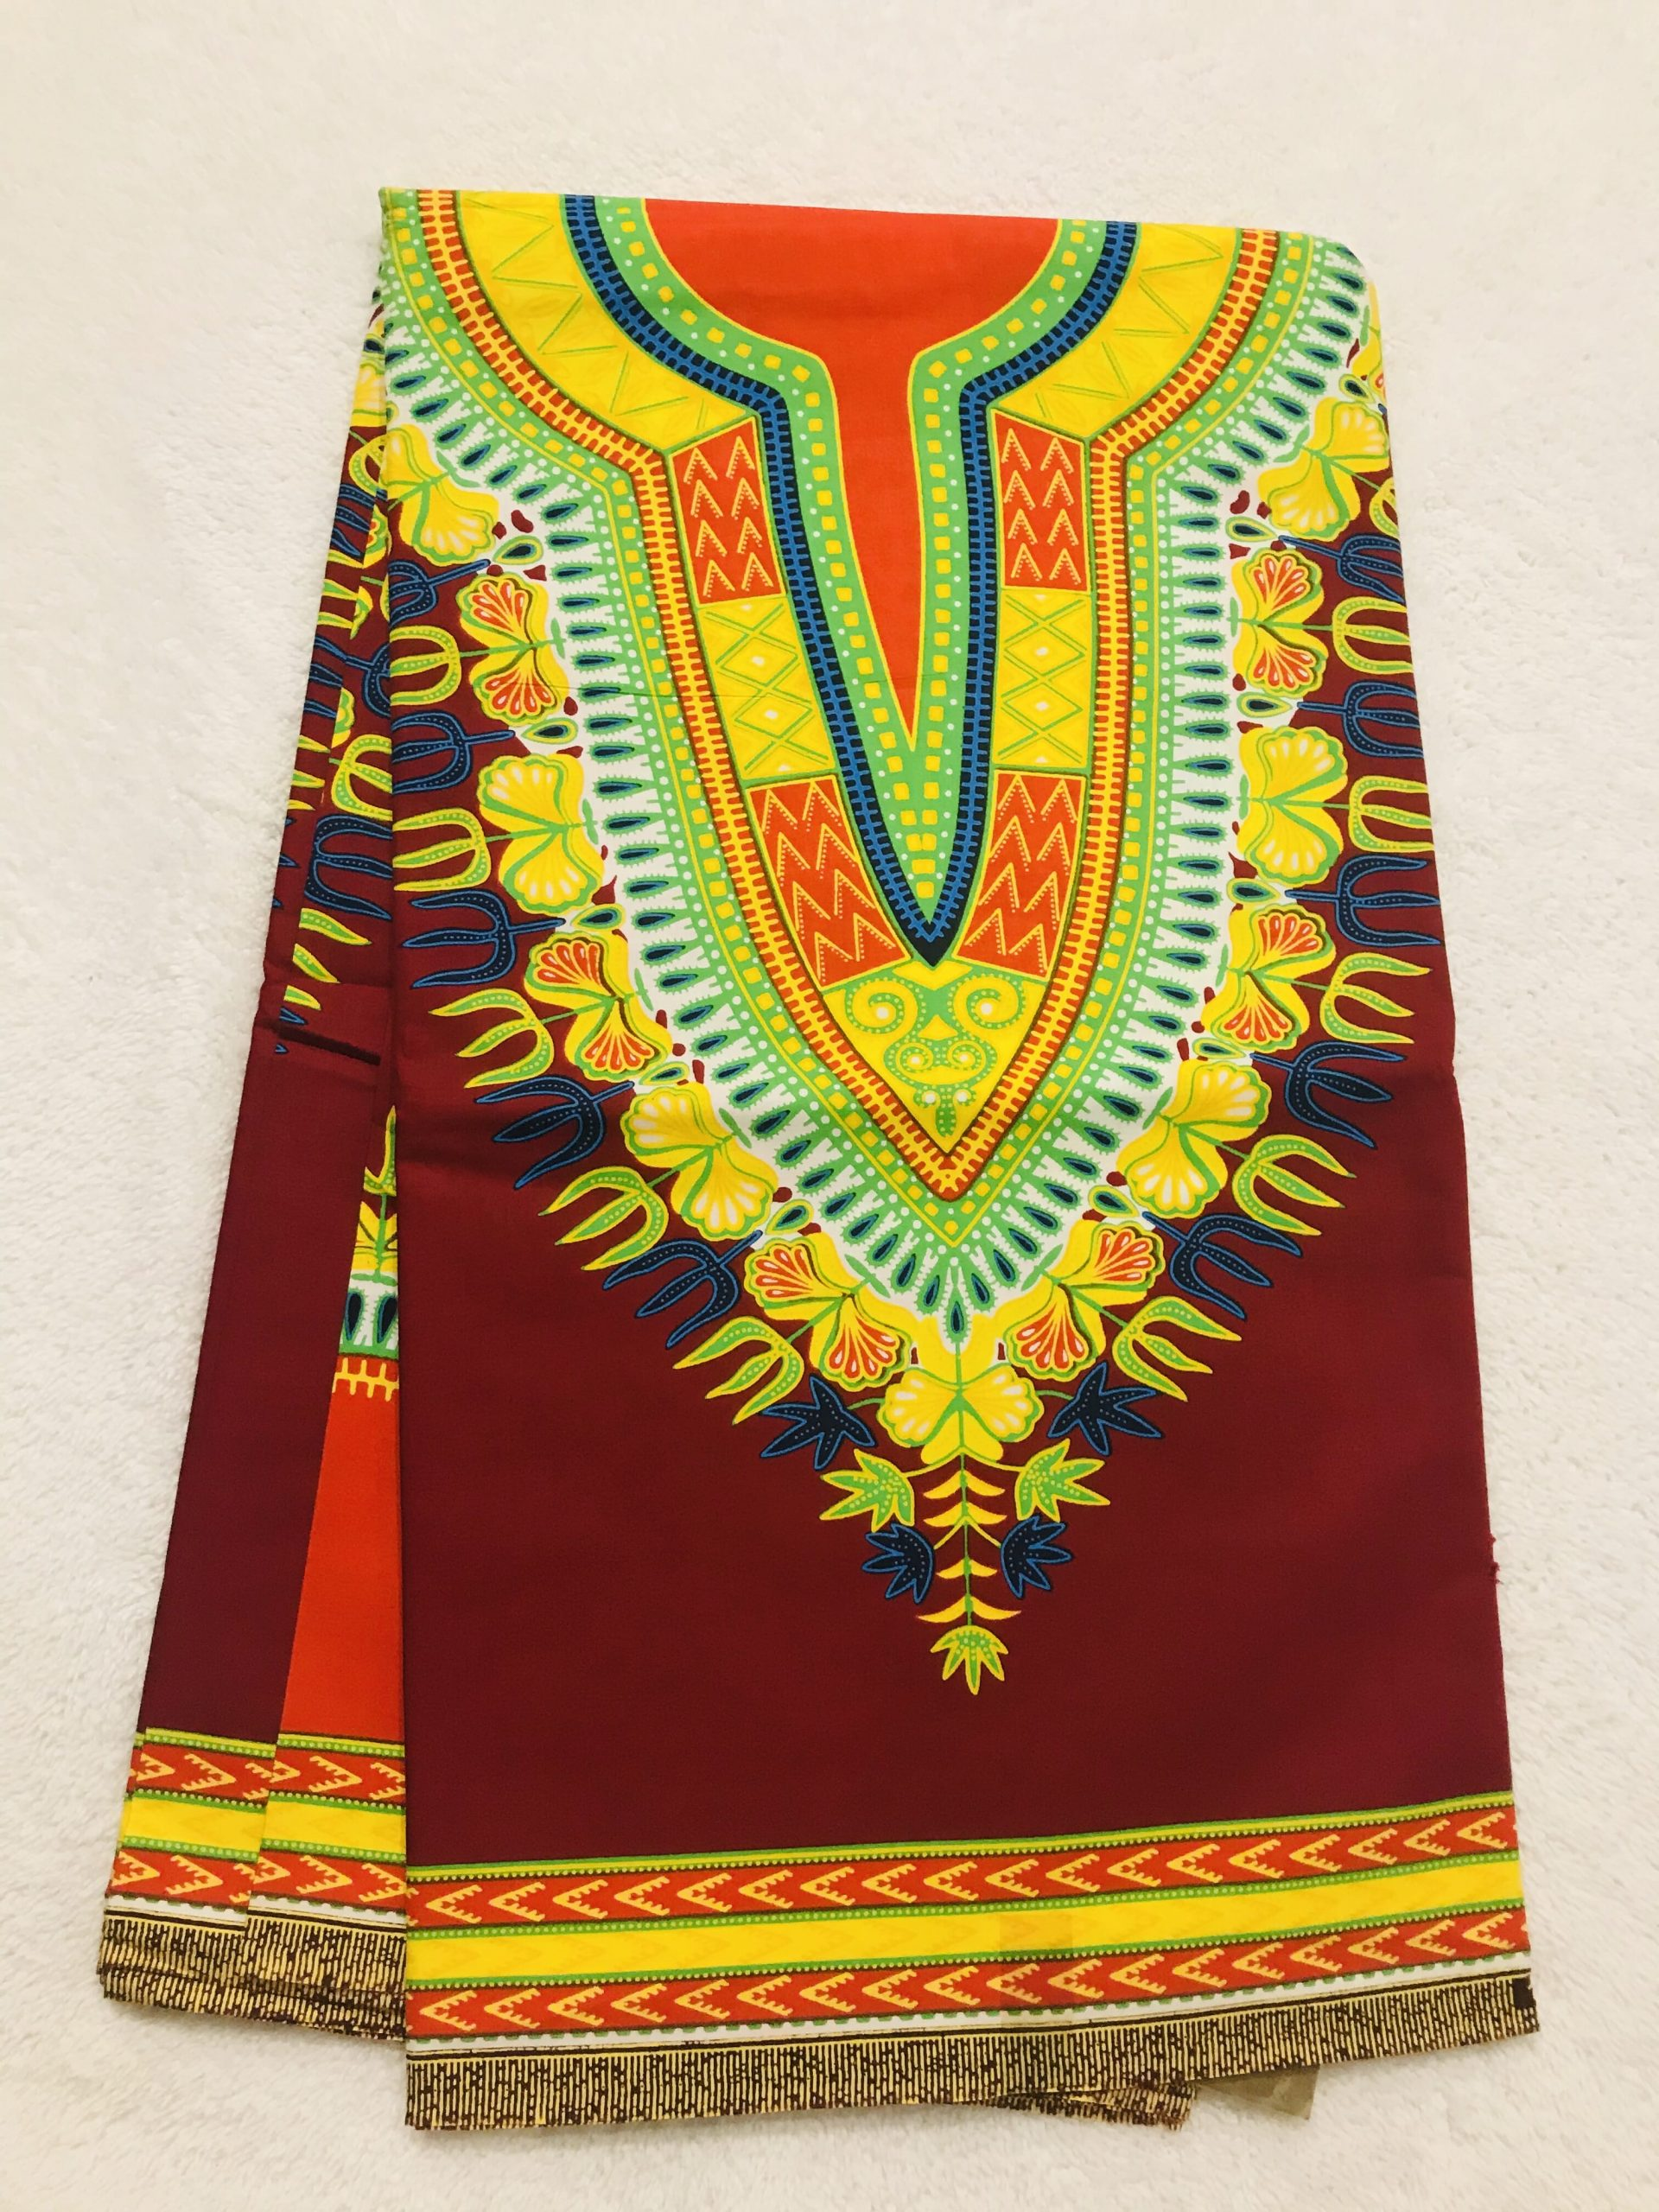 African Wax 6 yards vine red yellow and green partern dashiki real African print.Ankanra 100% cotton material.